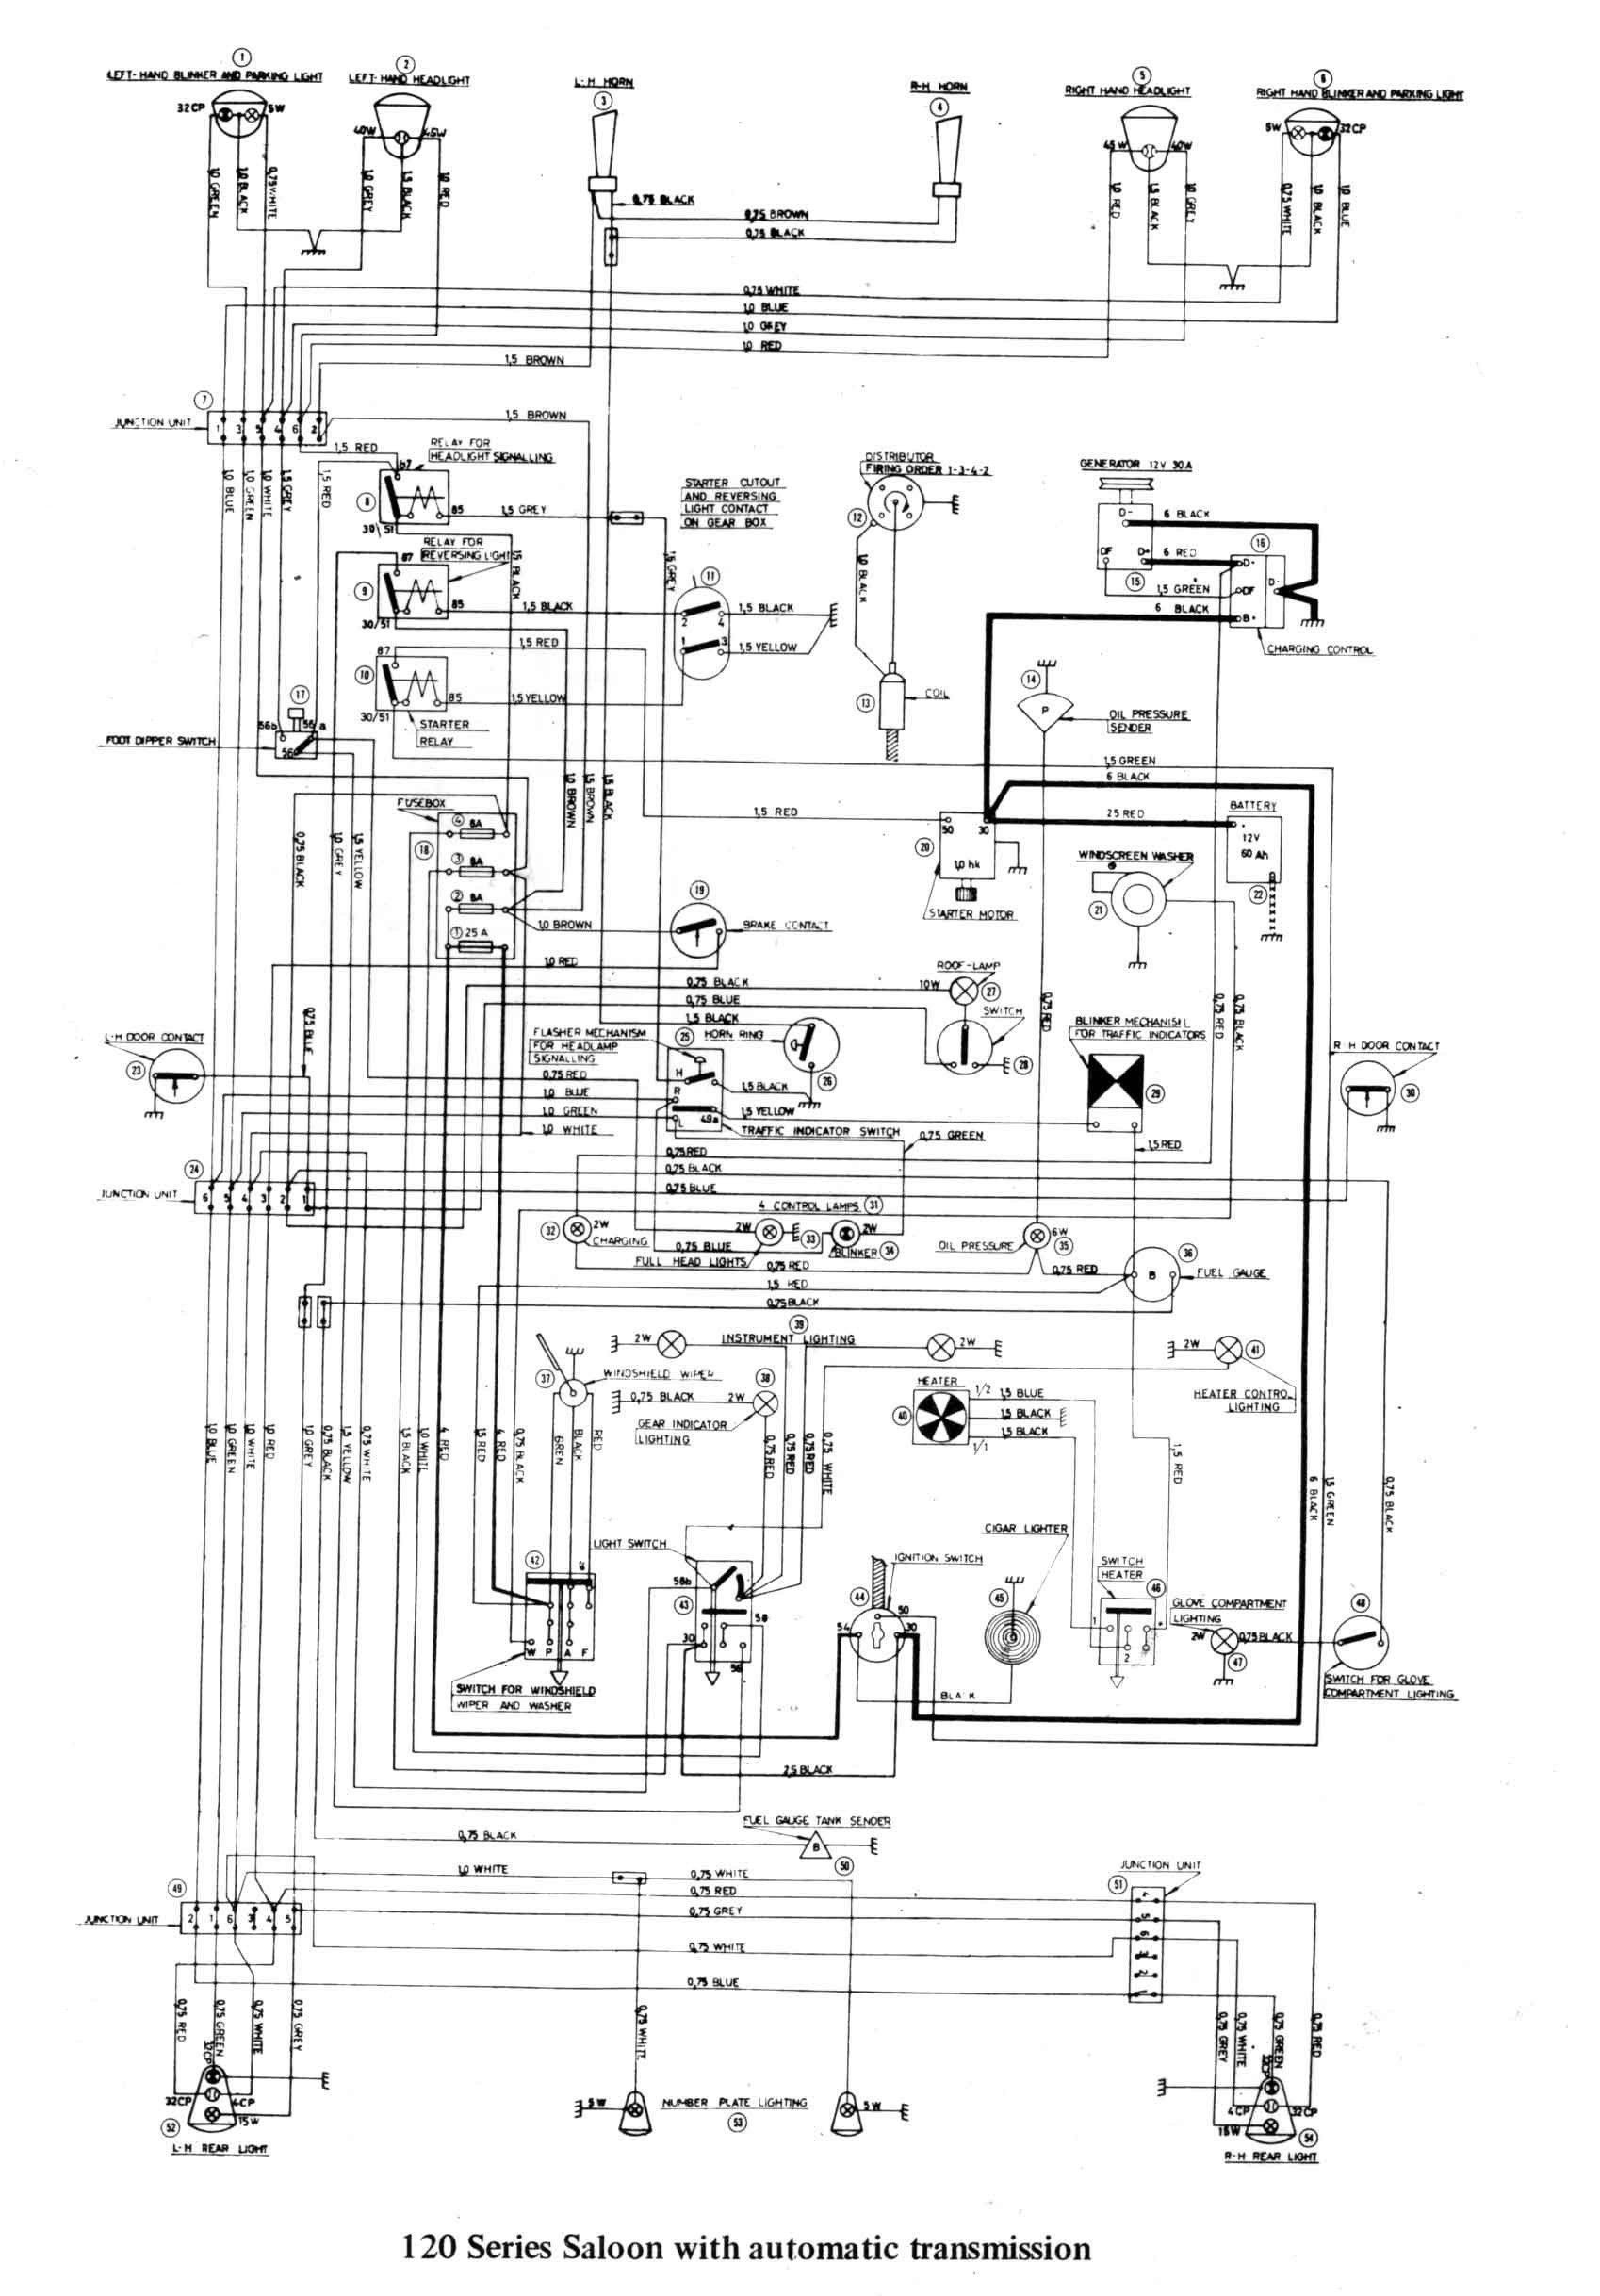 Diagram For A 2000 Volvo S70 Daewoo Lanos Cooling System Leganza Wiring 2002 S60 Engine Wire Diagrams Enthusiast U2022 Rh Rasalibre Co